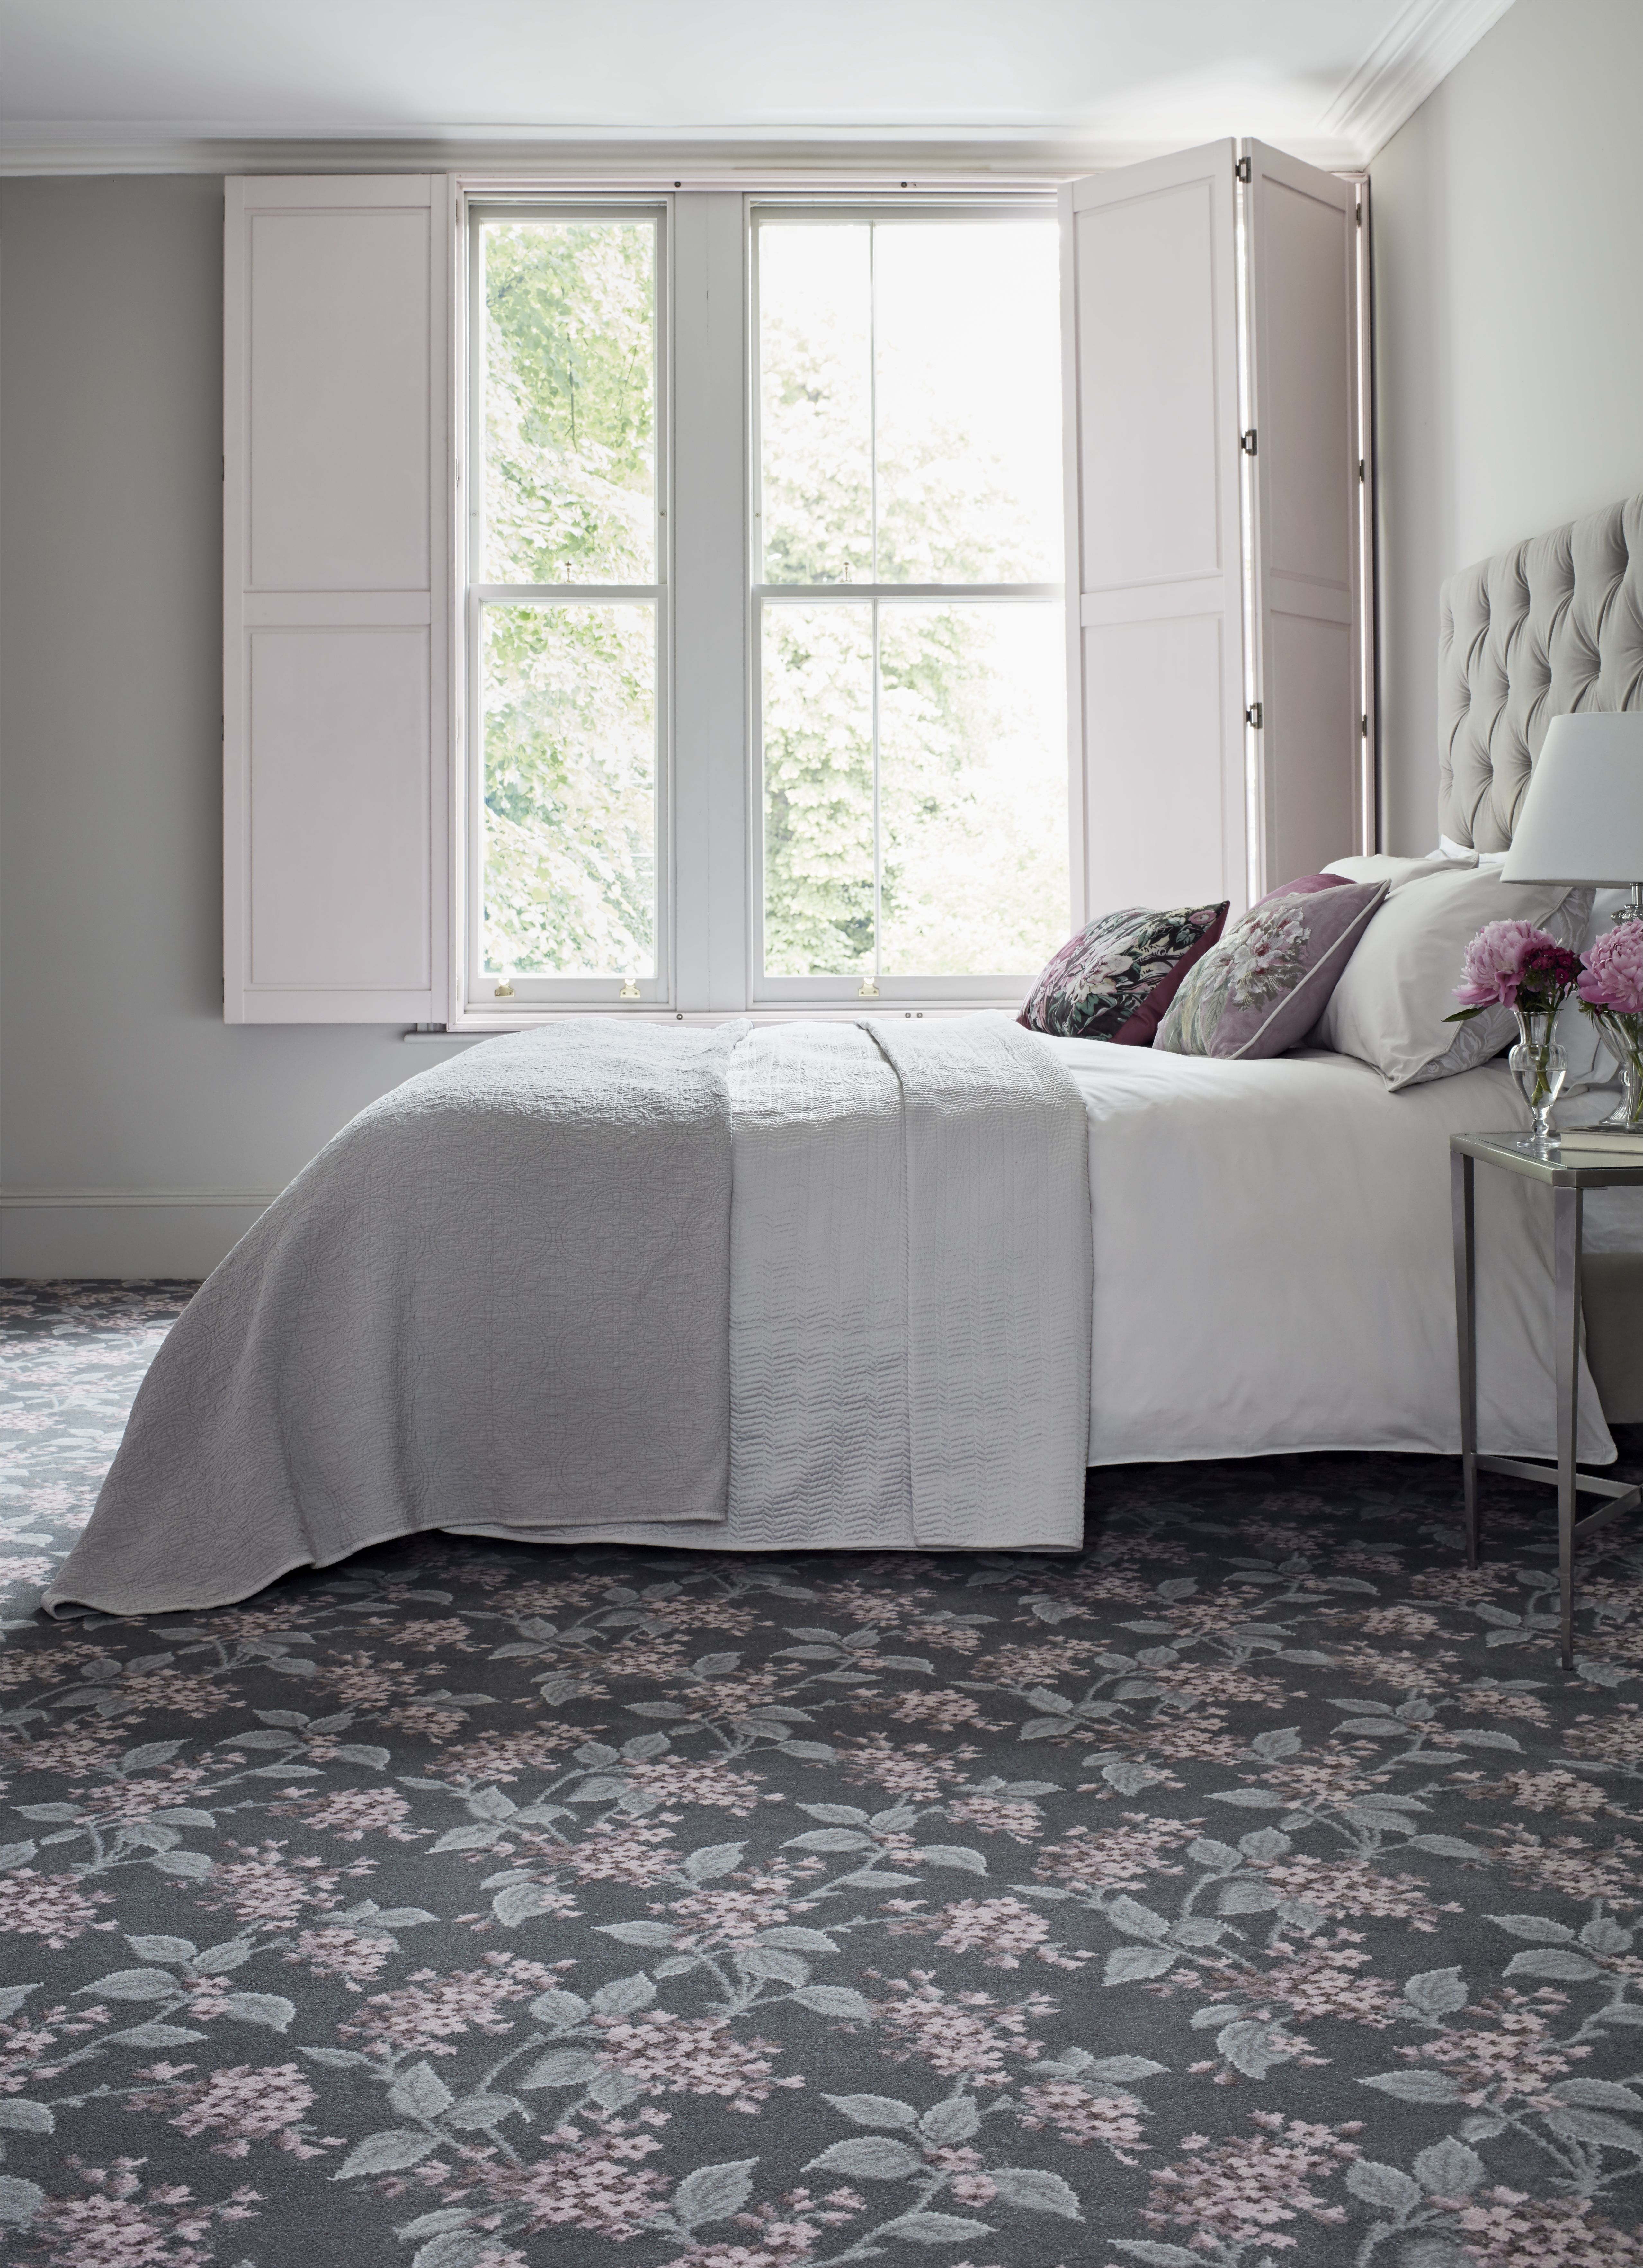 The New Laura Ashley Range By Brintons Consists Of 16 Beautiful